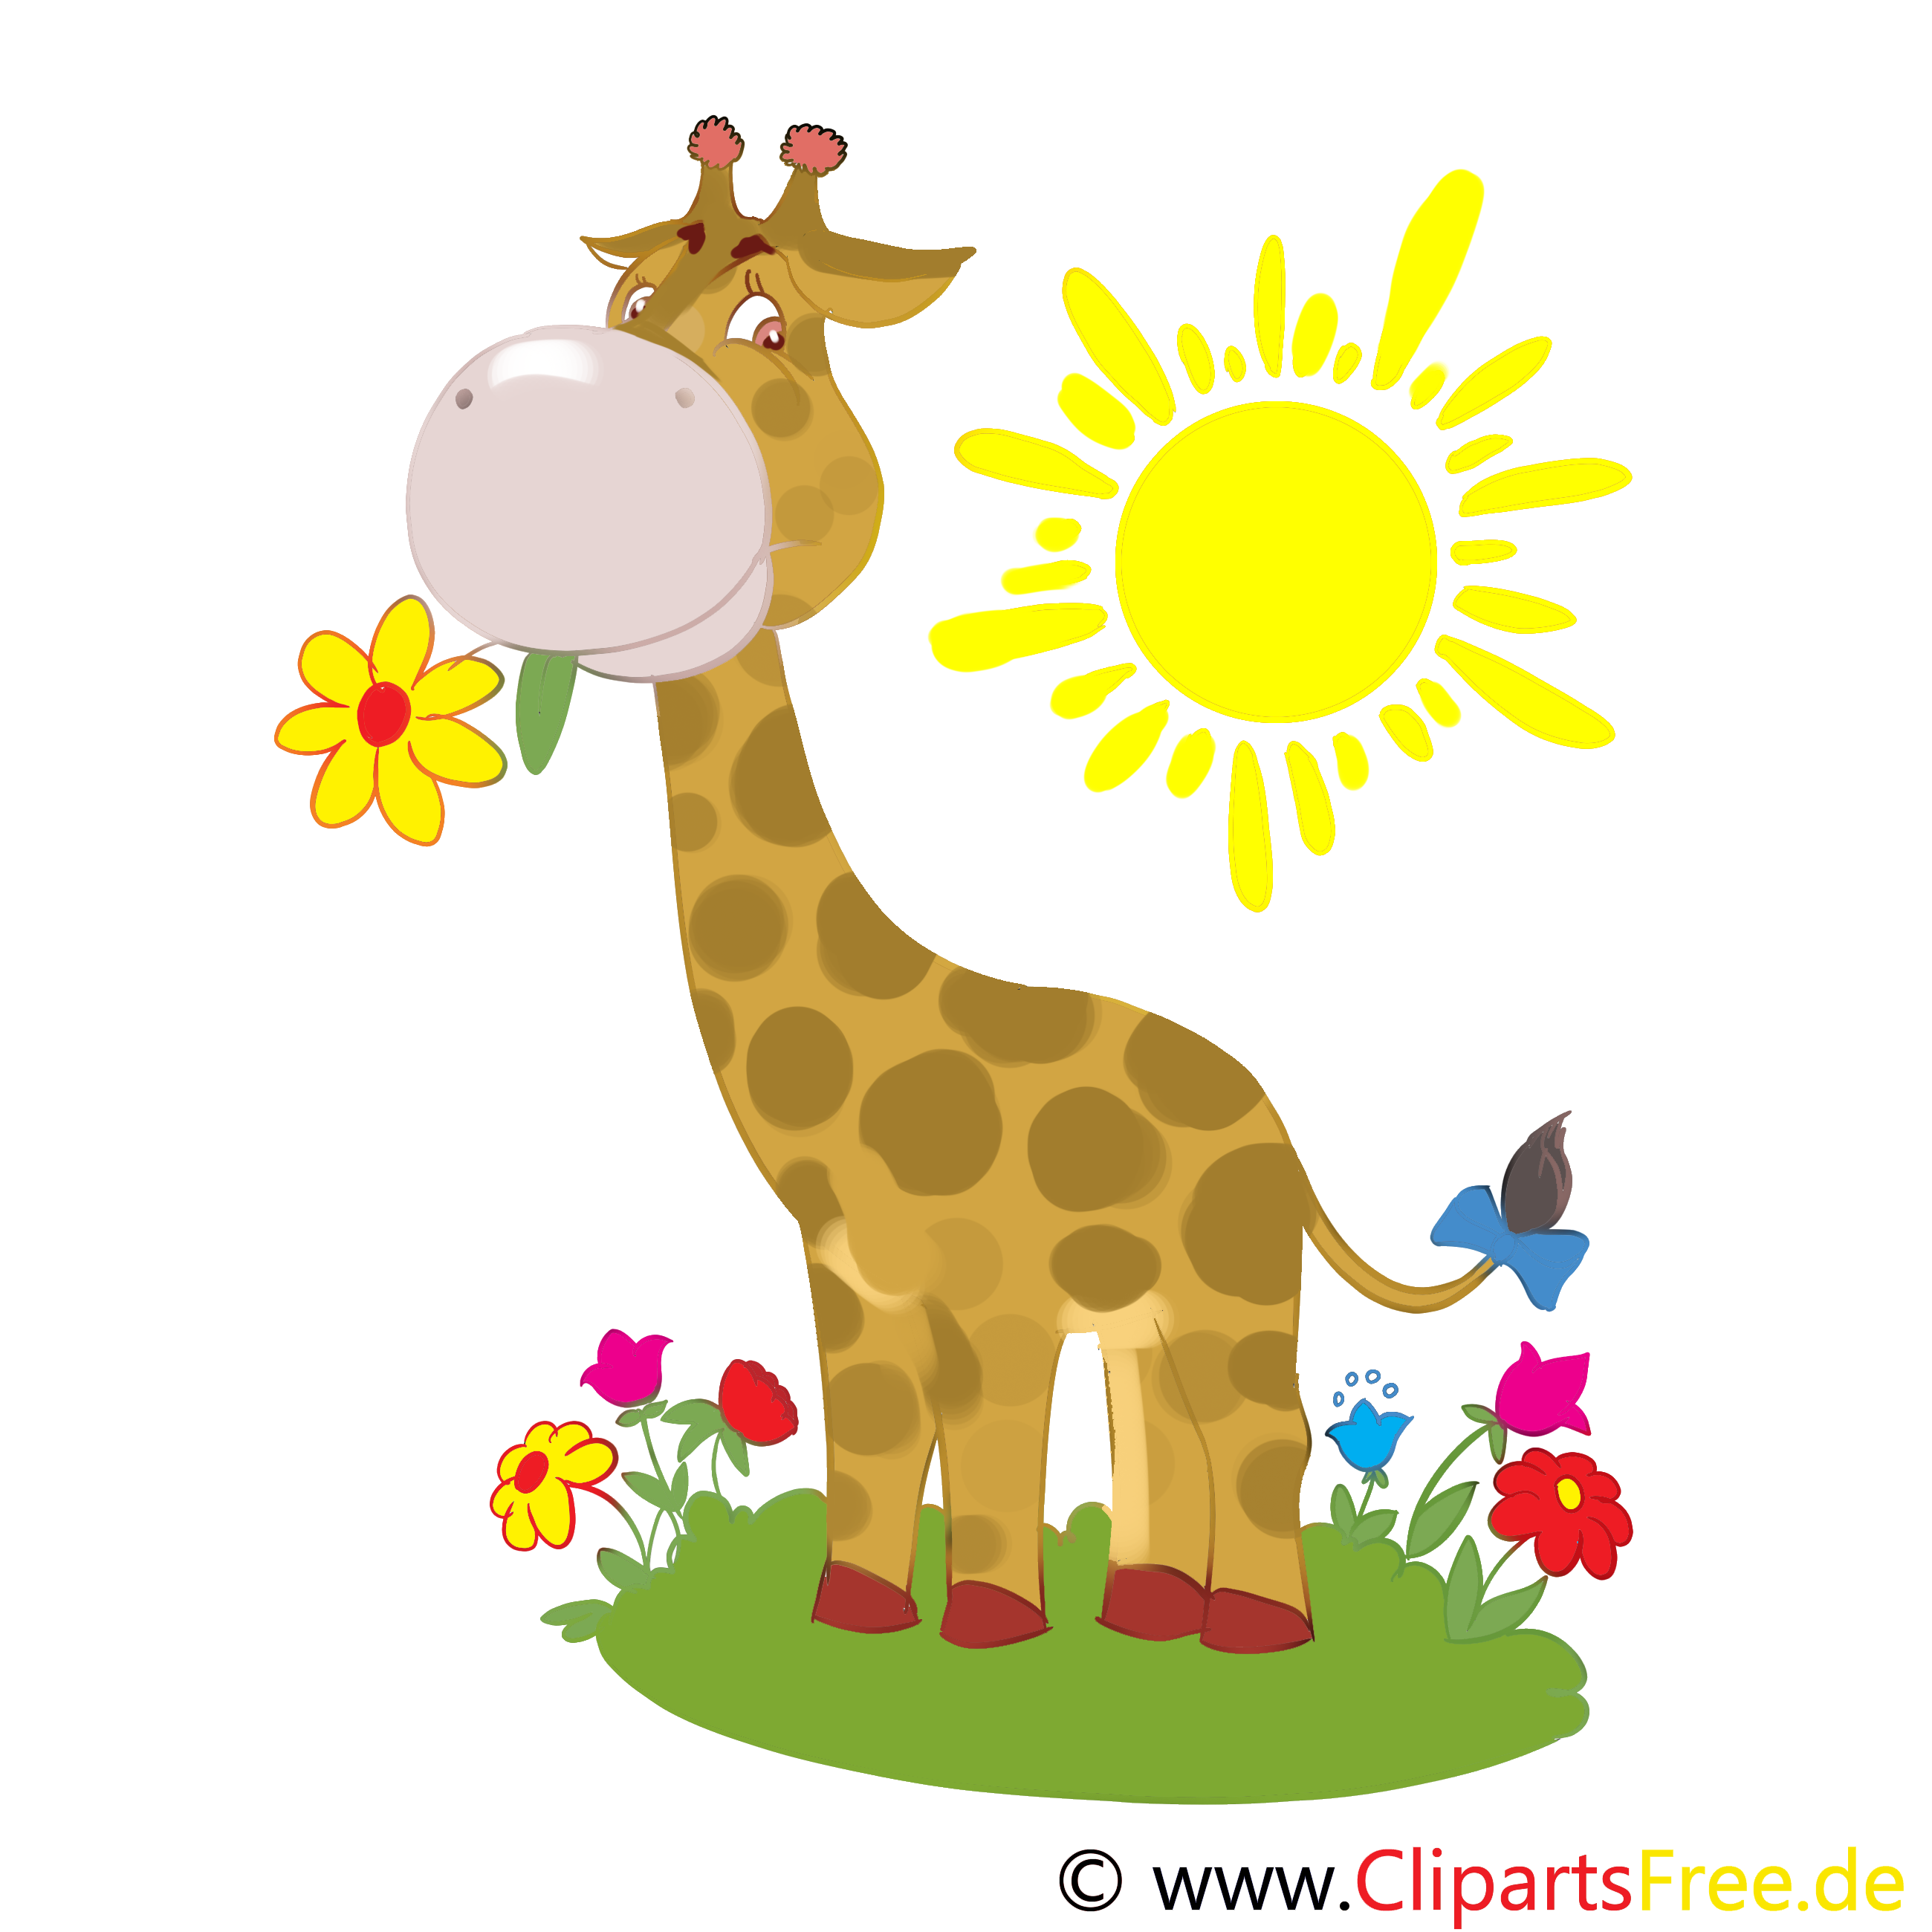 Cartoon Giraffe Illustration, Clip Art, eCard, Zoo